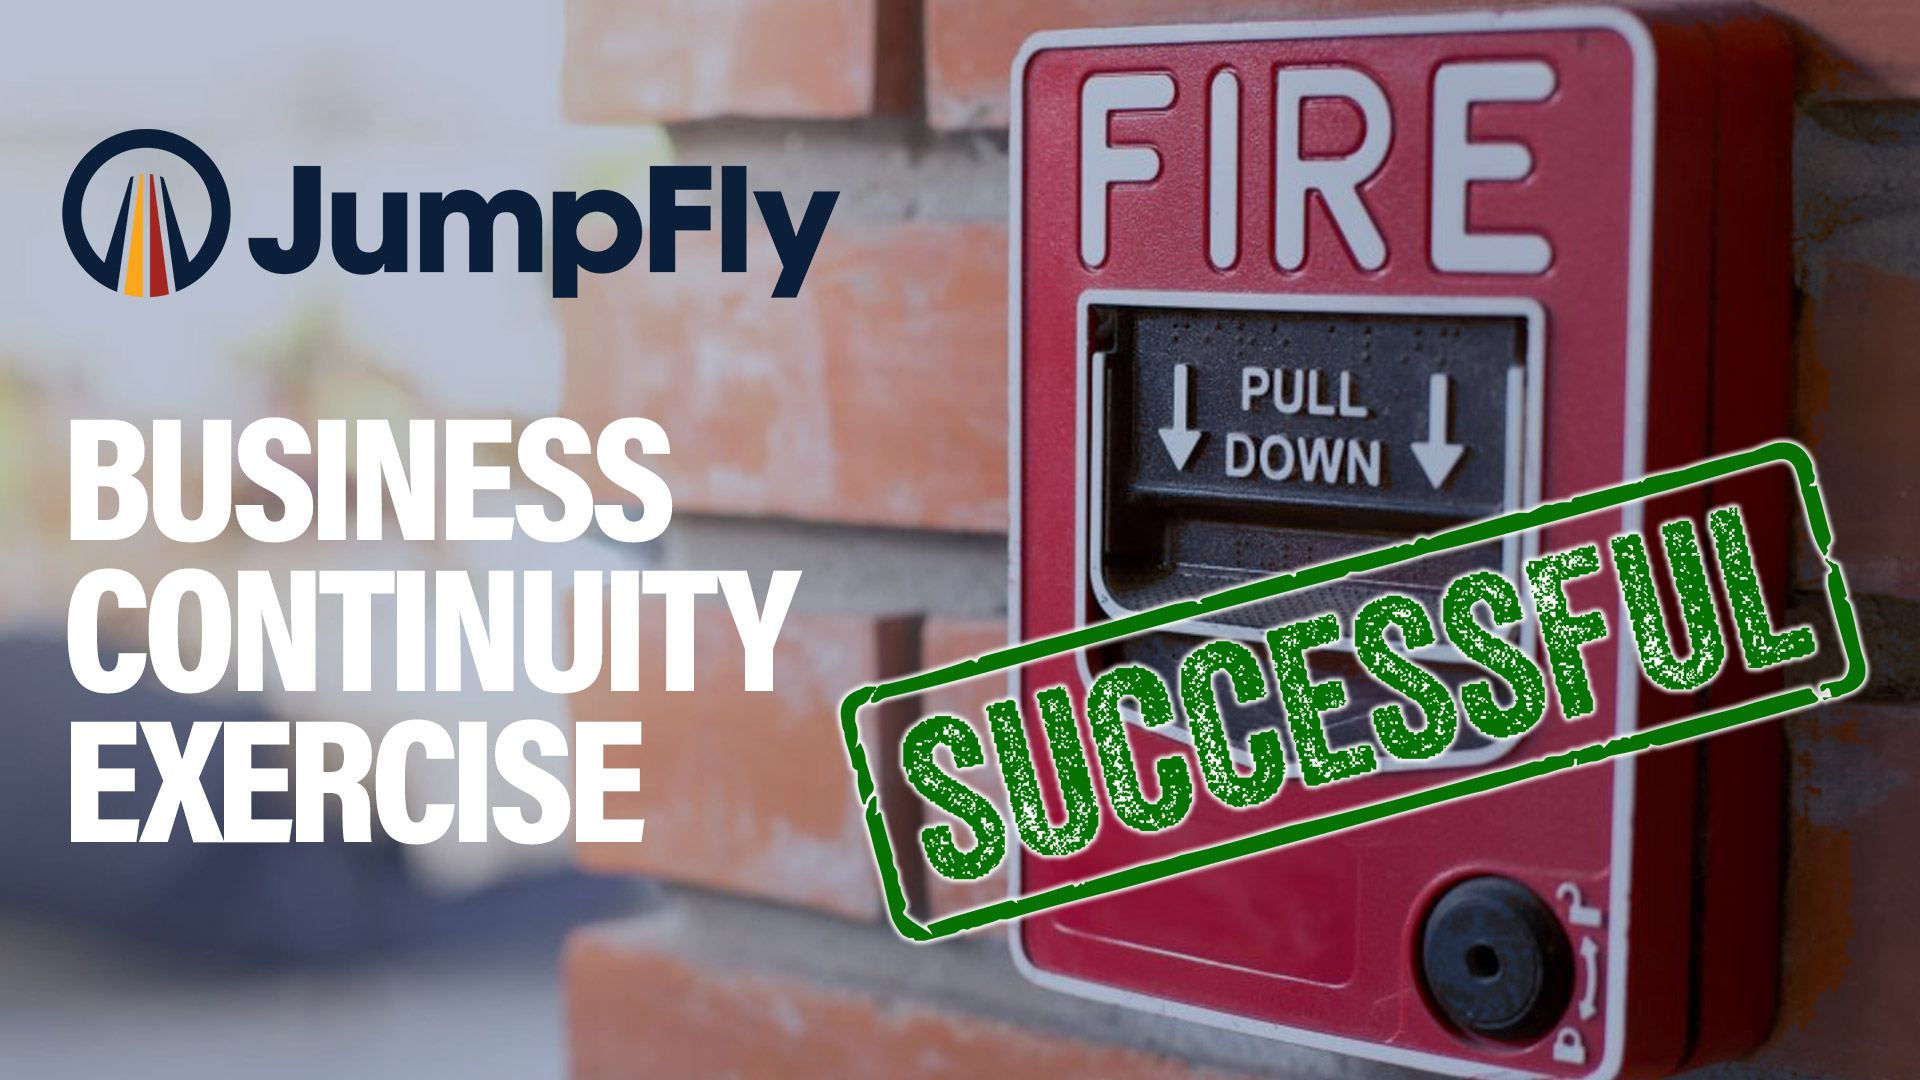 JumpFly Holds Business Continuity Exercise